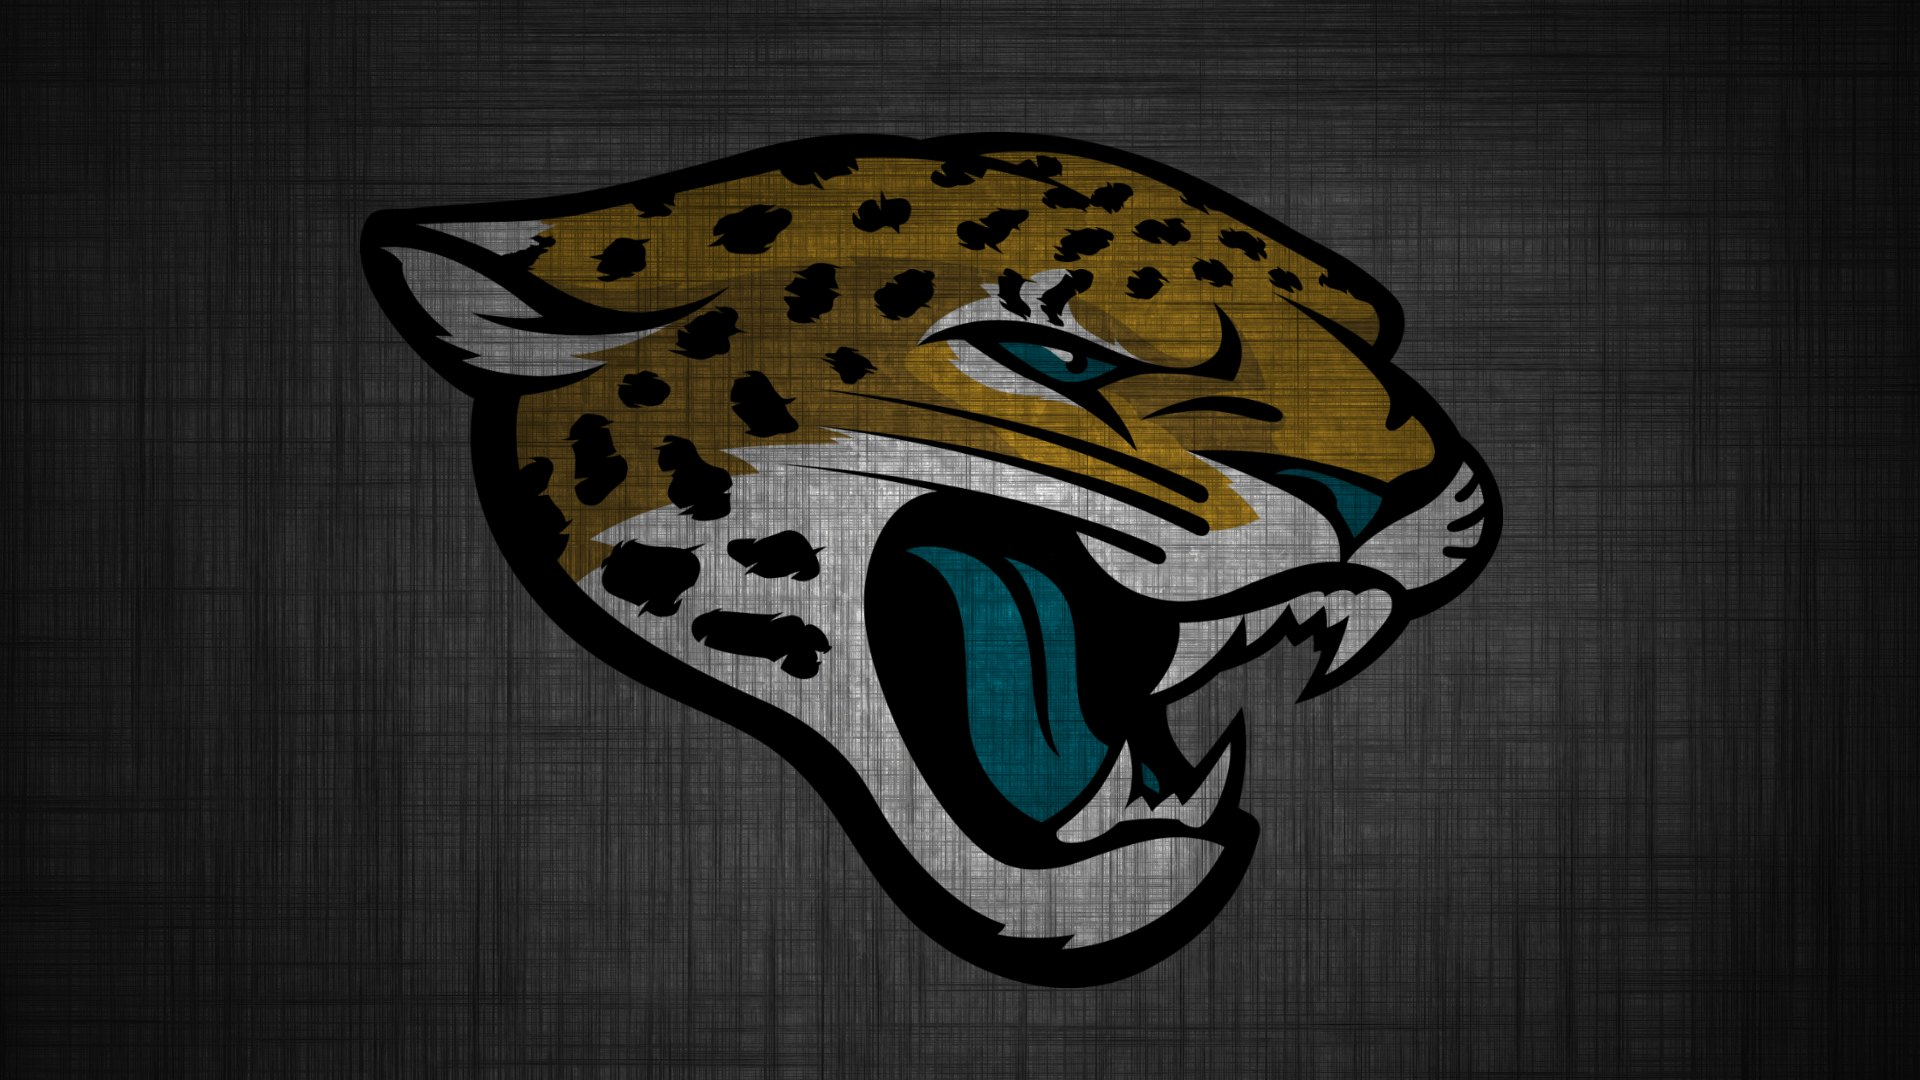 jacksonville jaguars new logo wallpaper - photo #12